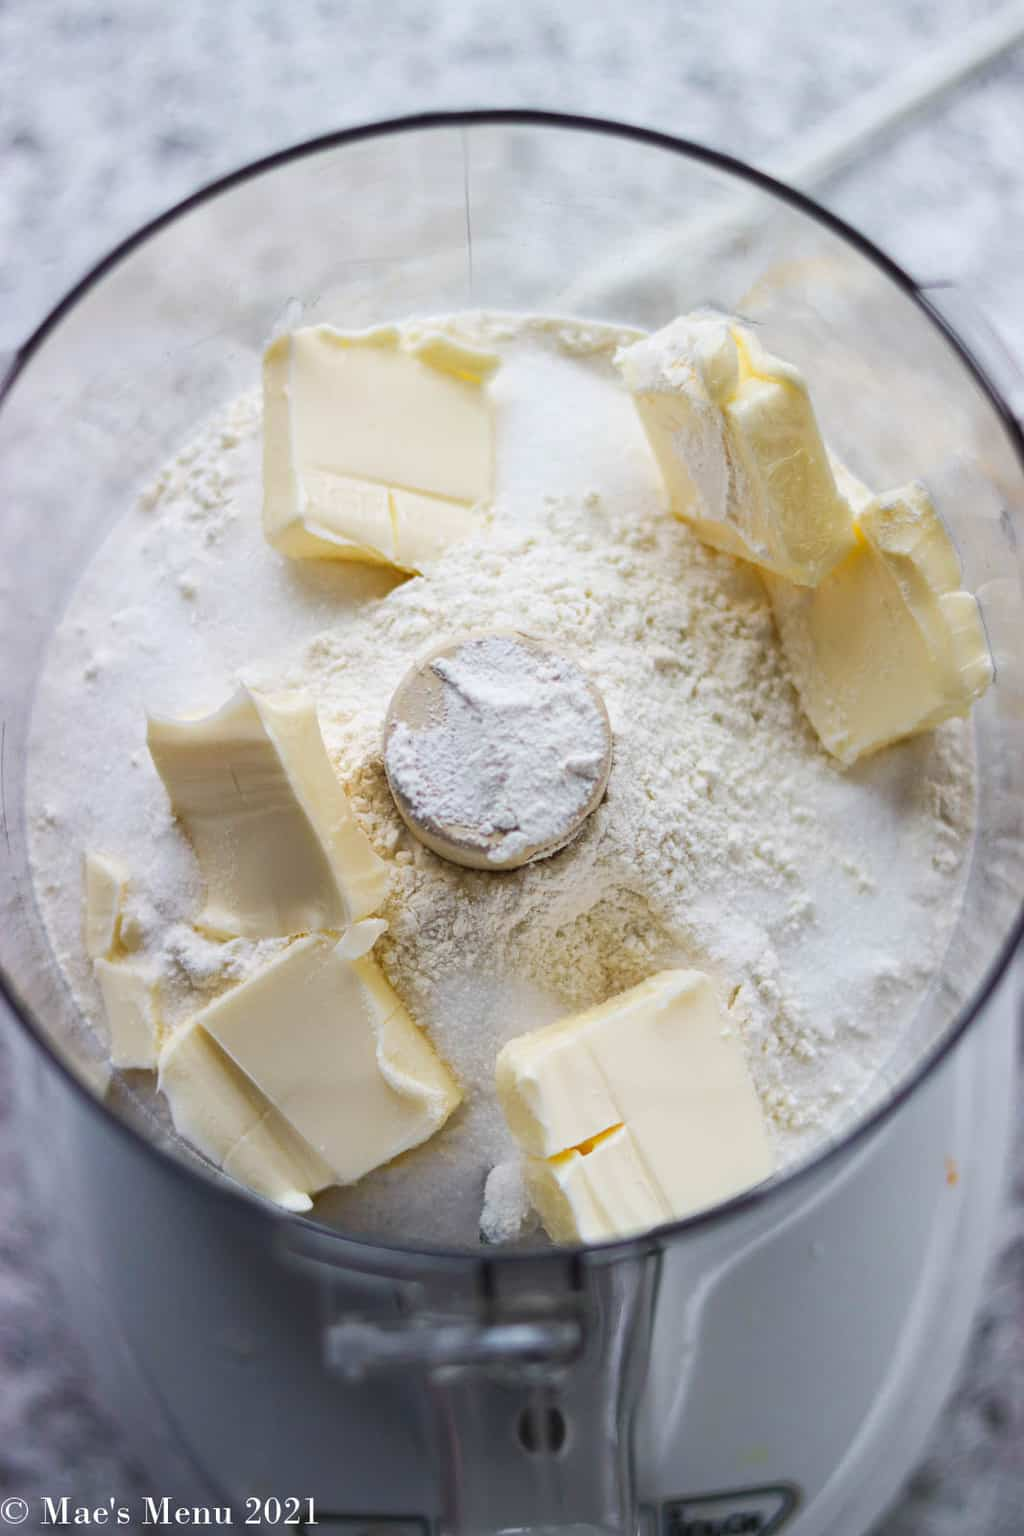 A food processor with flour, sugar, and butter cubes